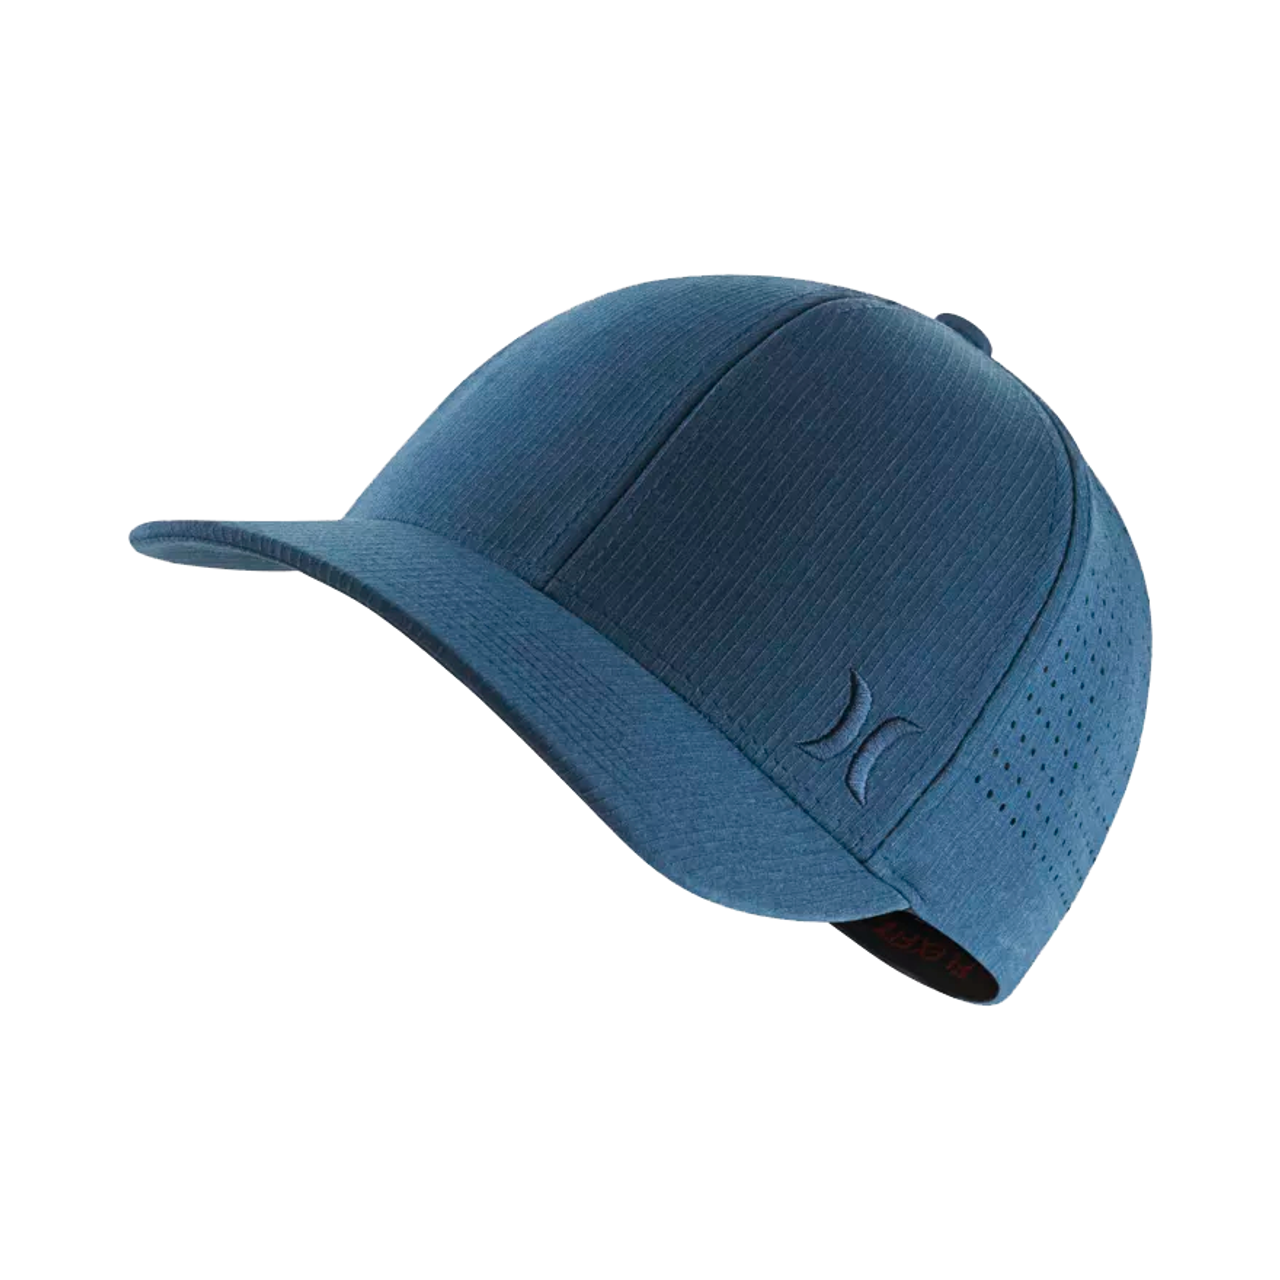 e743671a6d04ae ... promo code for hurley hat phantom ripstop obsidian 8846c cad4a